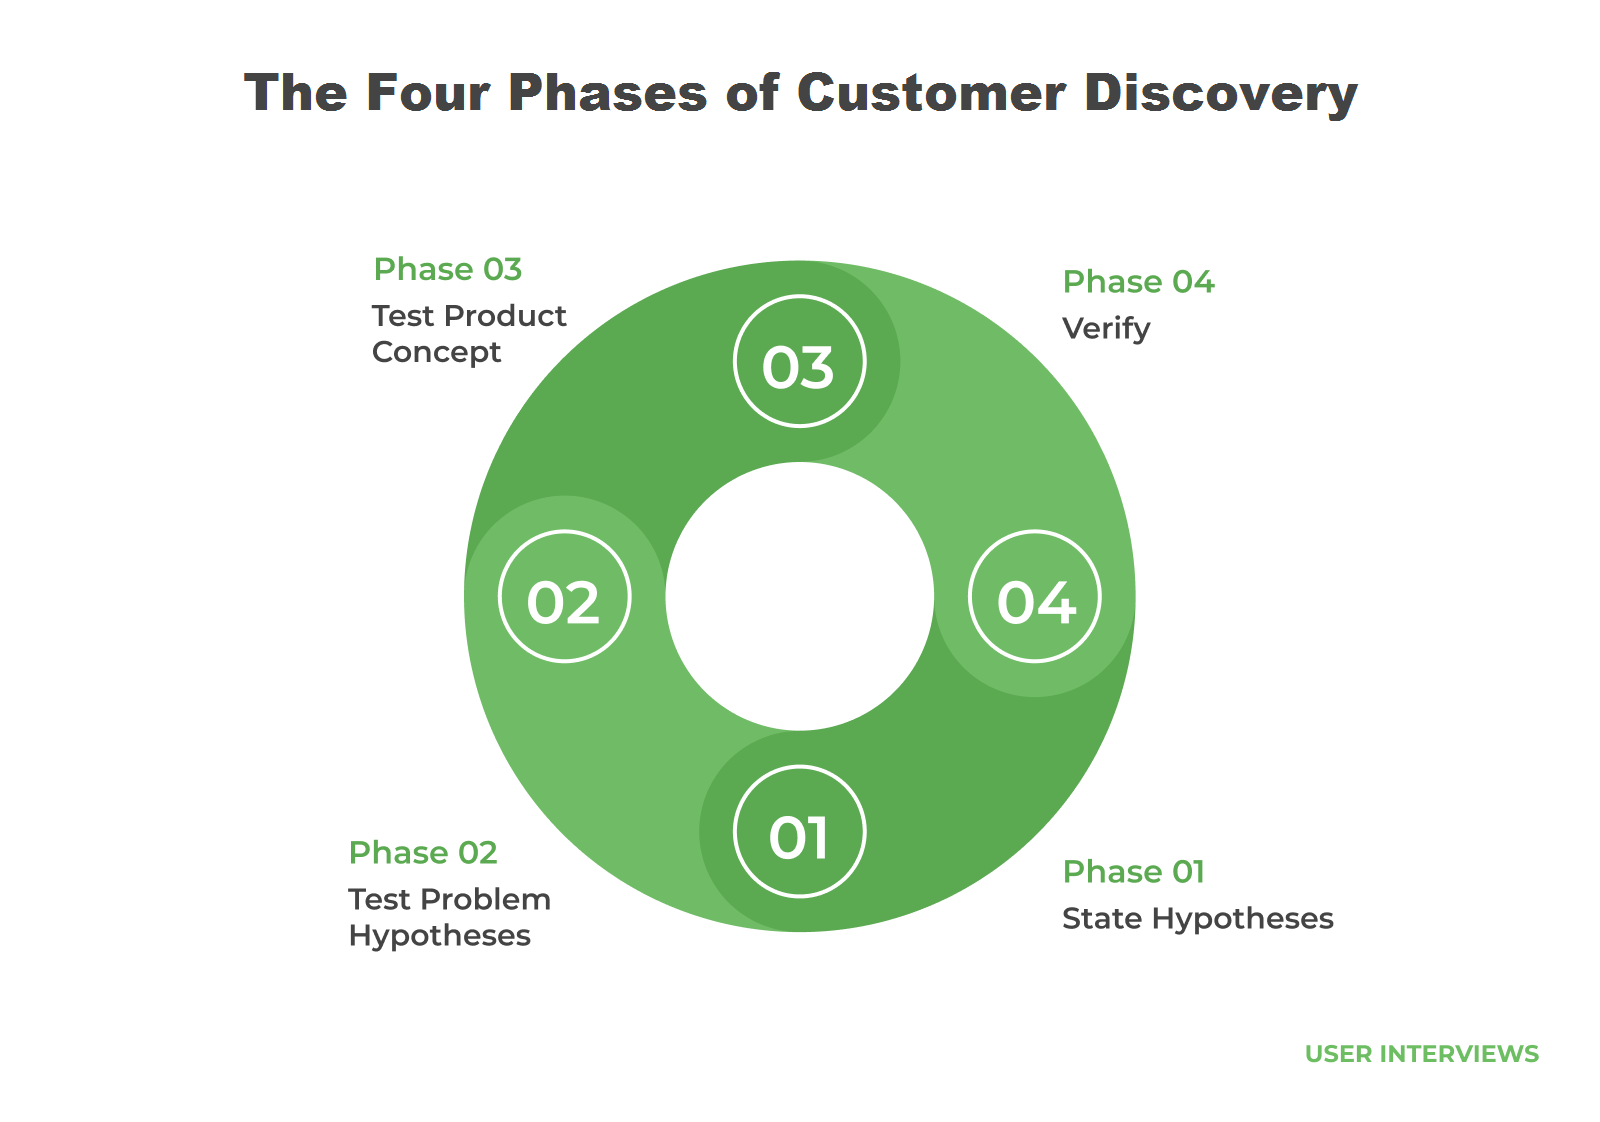 The Four Phases of Customer Discovery - Phase 1: State Hypotheses; Phase 2: Test Problem Hypotheses; Phase 3: Test Product Concept; Phase 4: Verify